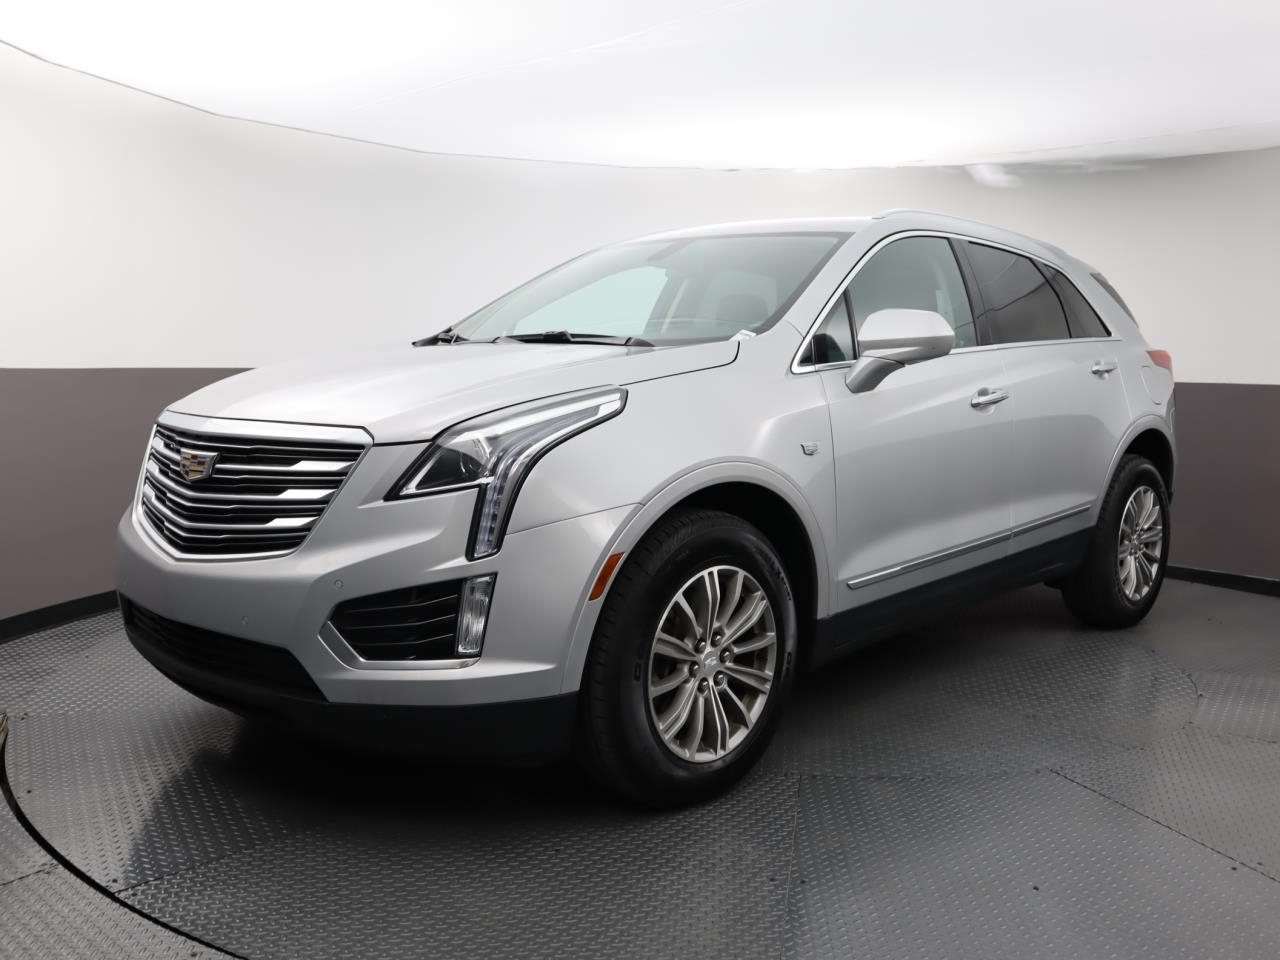 Used CADILLAC XT5 2017 WEST PALM LUXURY FWD